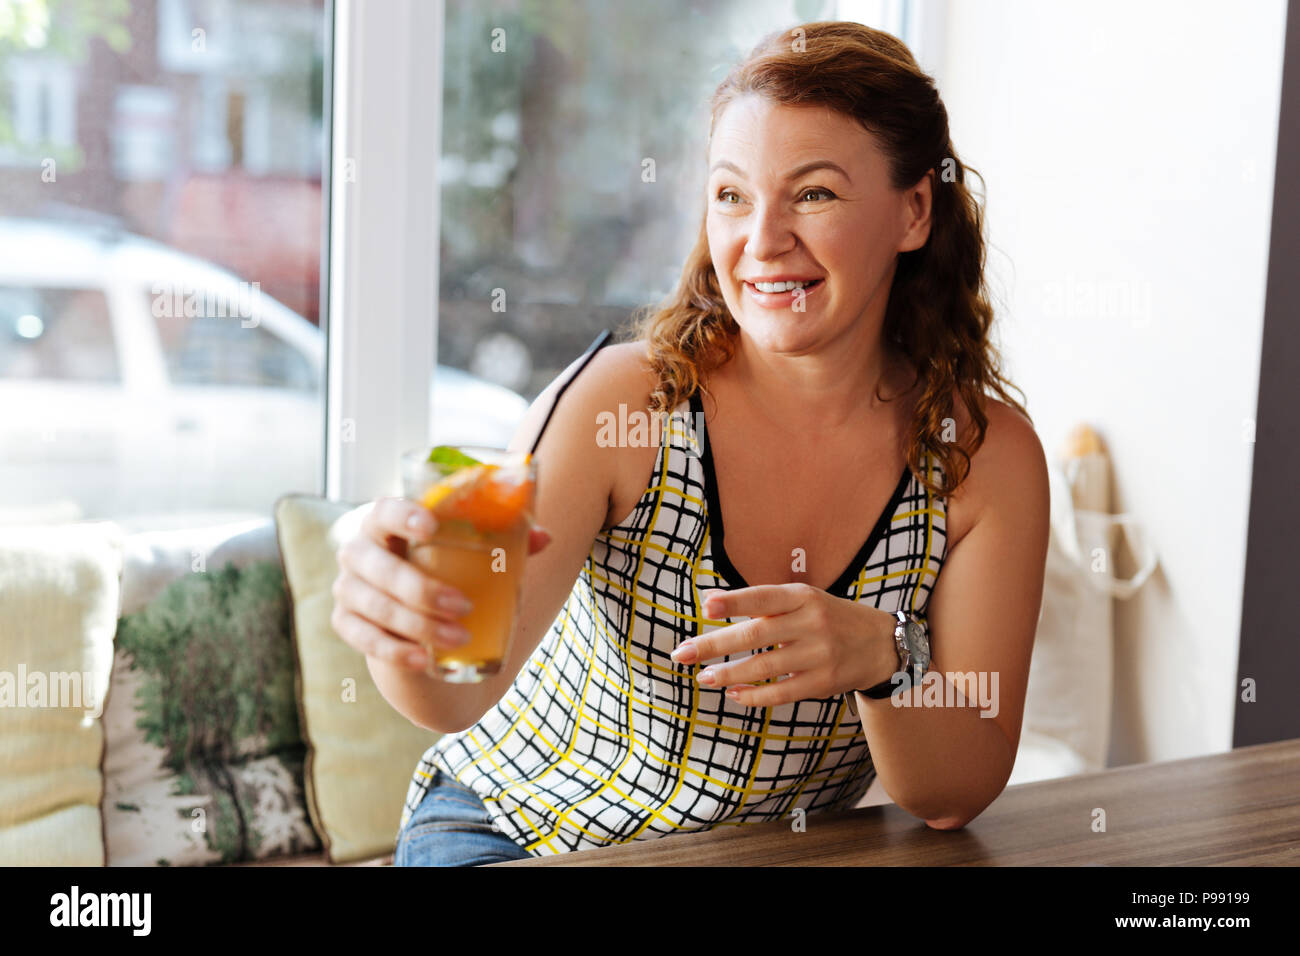 Red-haired beaming woman drinking cocktail in restaurant - Stock Image